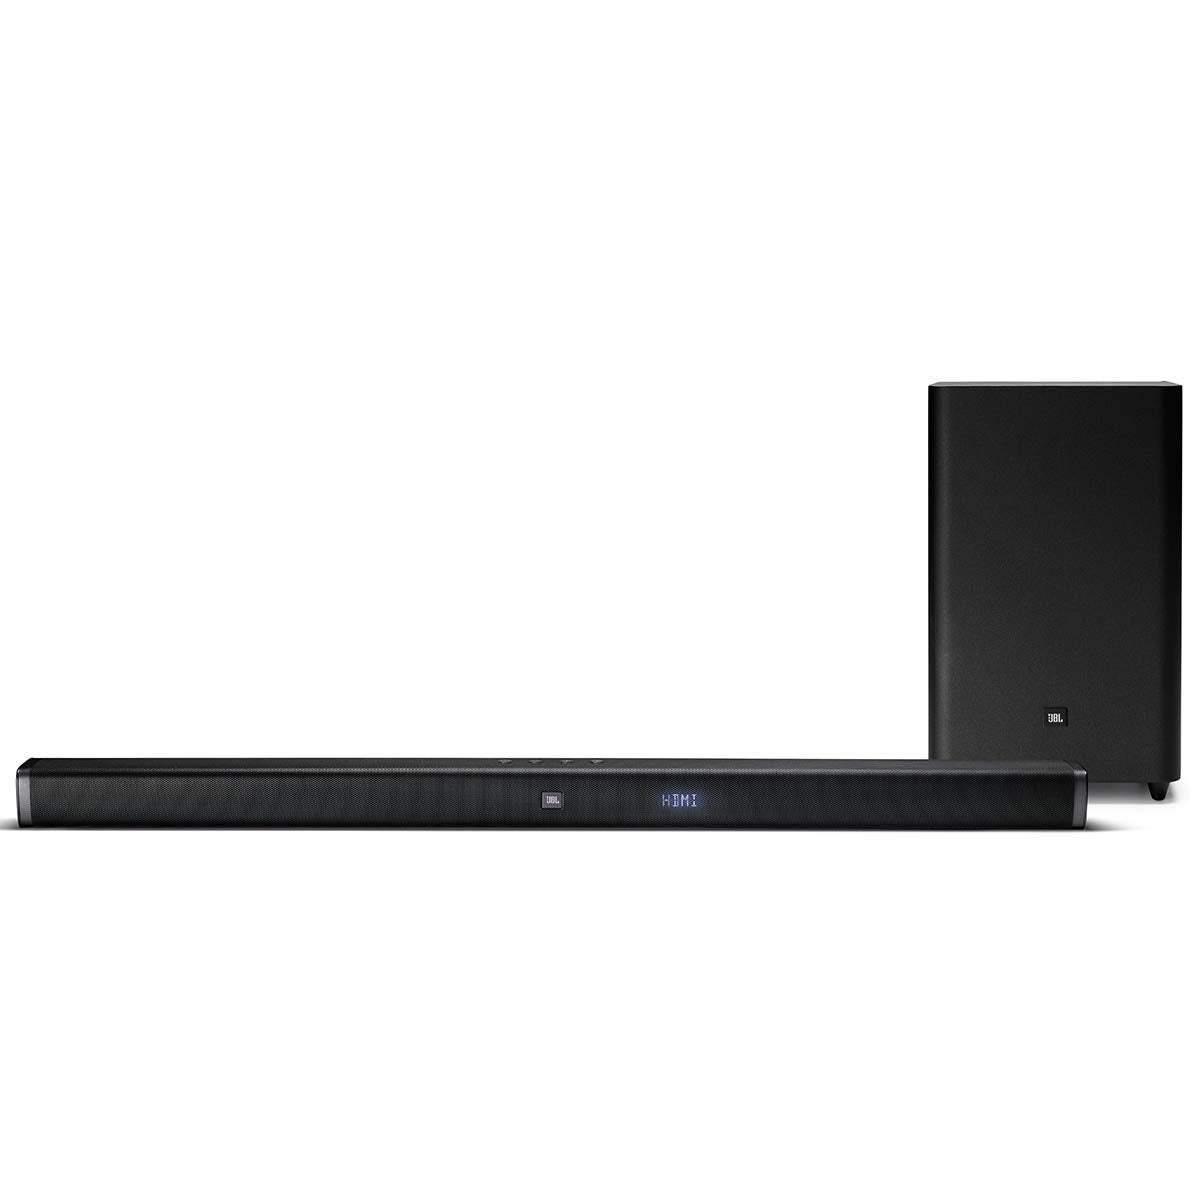 JBL 2.1 Sound Bar with Wireless Subwoofer